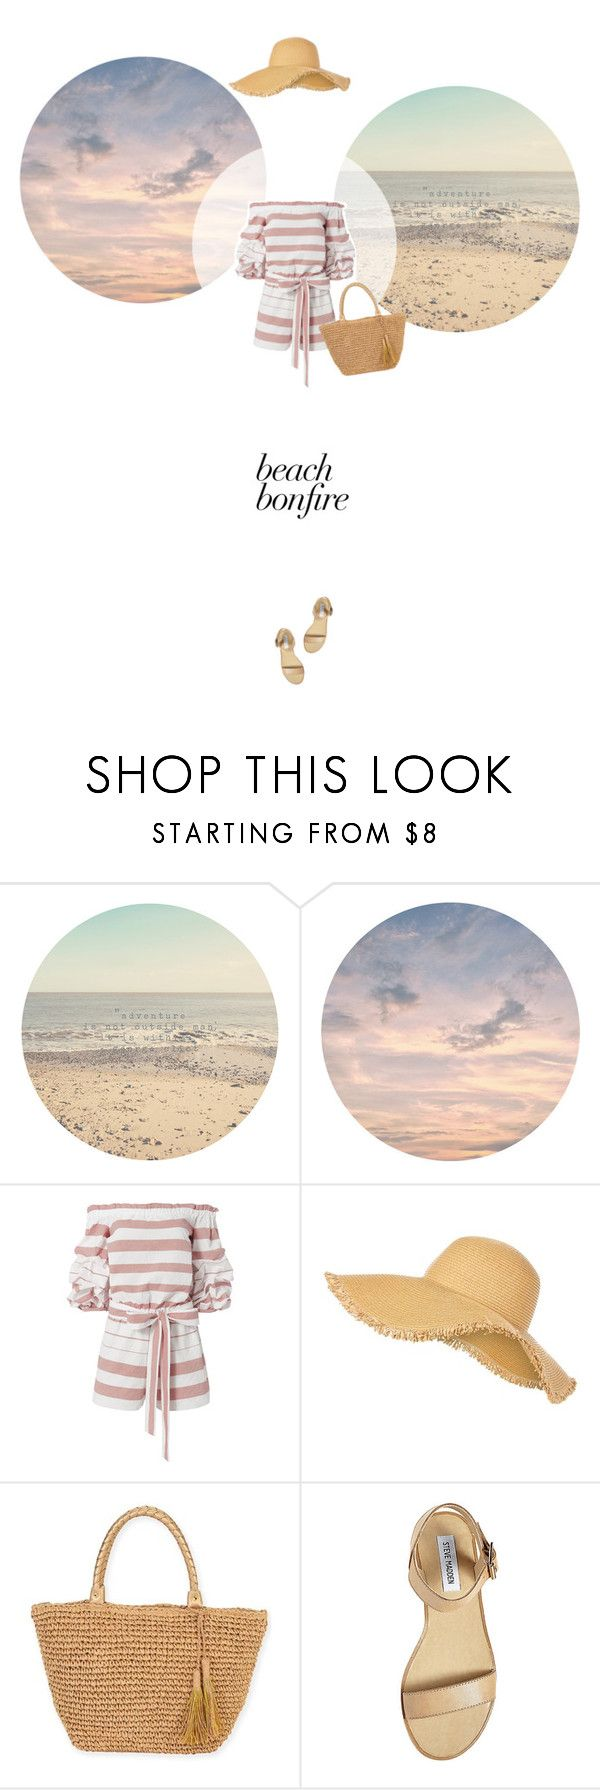 // 1305. Summer Nights: Beach Bonfire. by lilymcenvy on Polyvore featuring Steve Madden, Sun N' Sand, New Look and beachbonfire